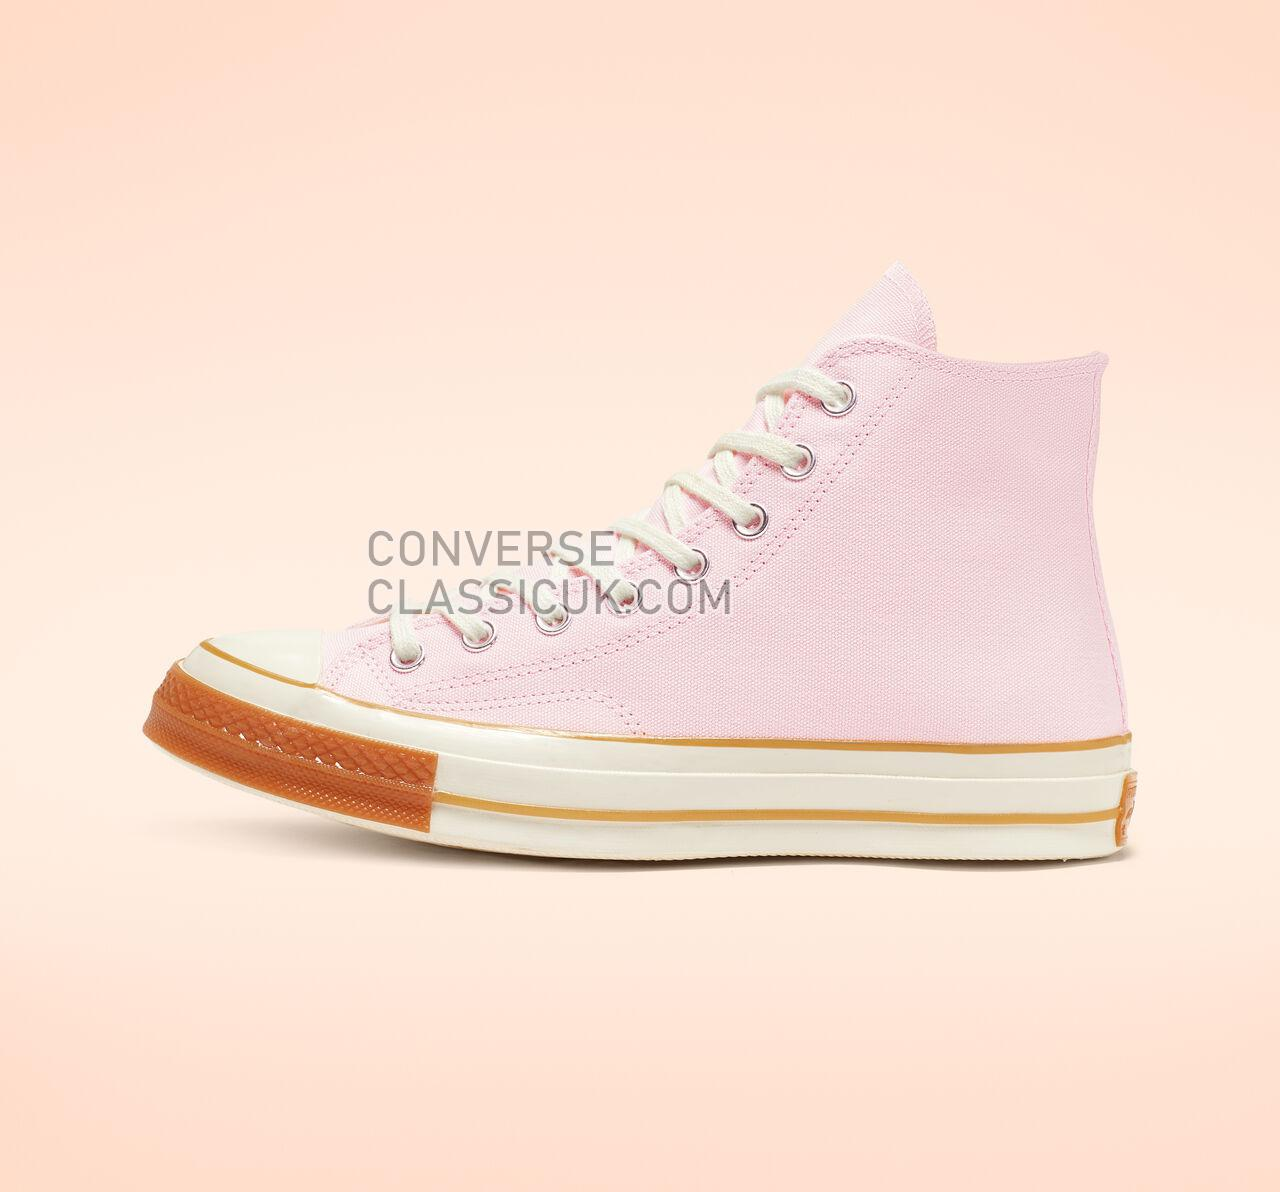 Converse Chuck 70 Pop Toe High Top Mens Womens Unisex 165719C Pink Foam/Egret/Gum Shoes